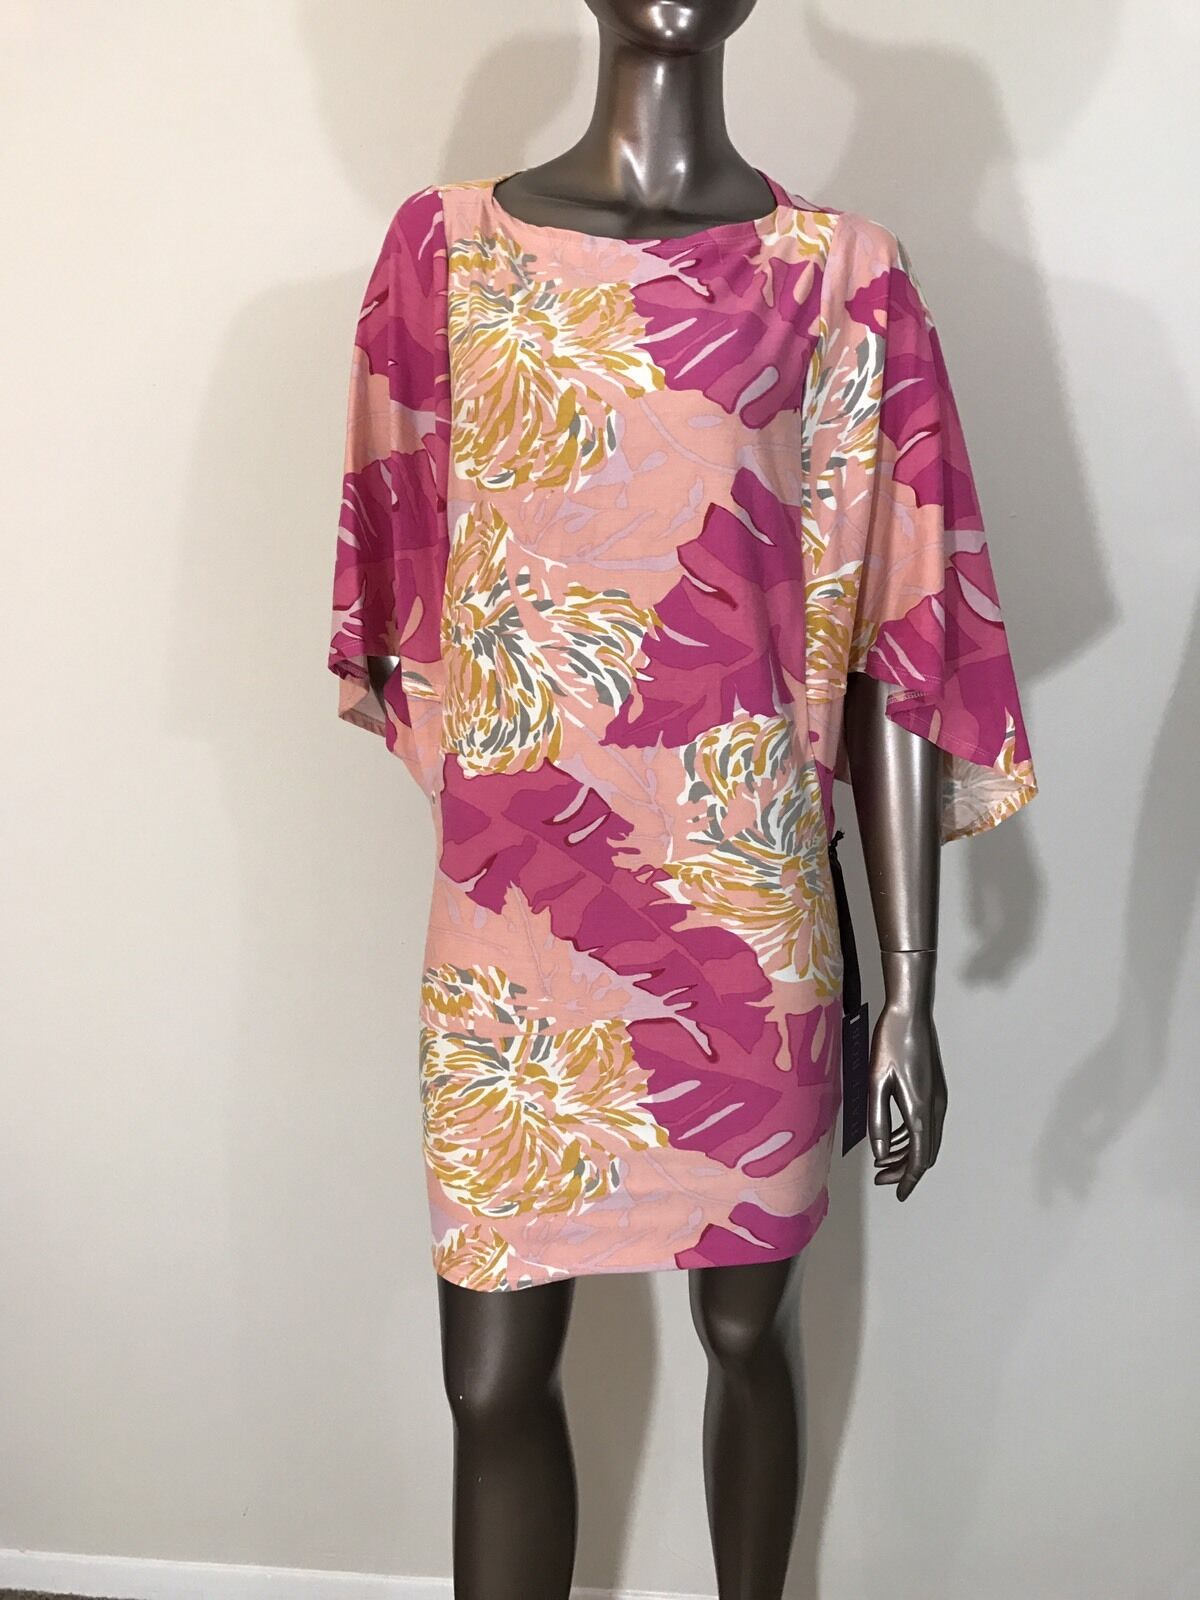 NWT Hale Bob paisley abstract peach salmon printed batwing dress size XS